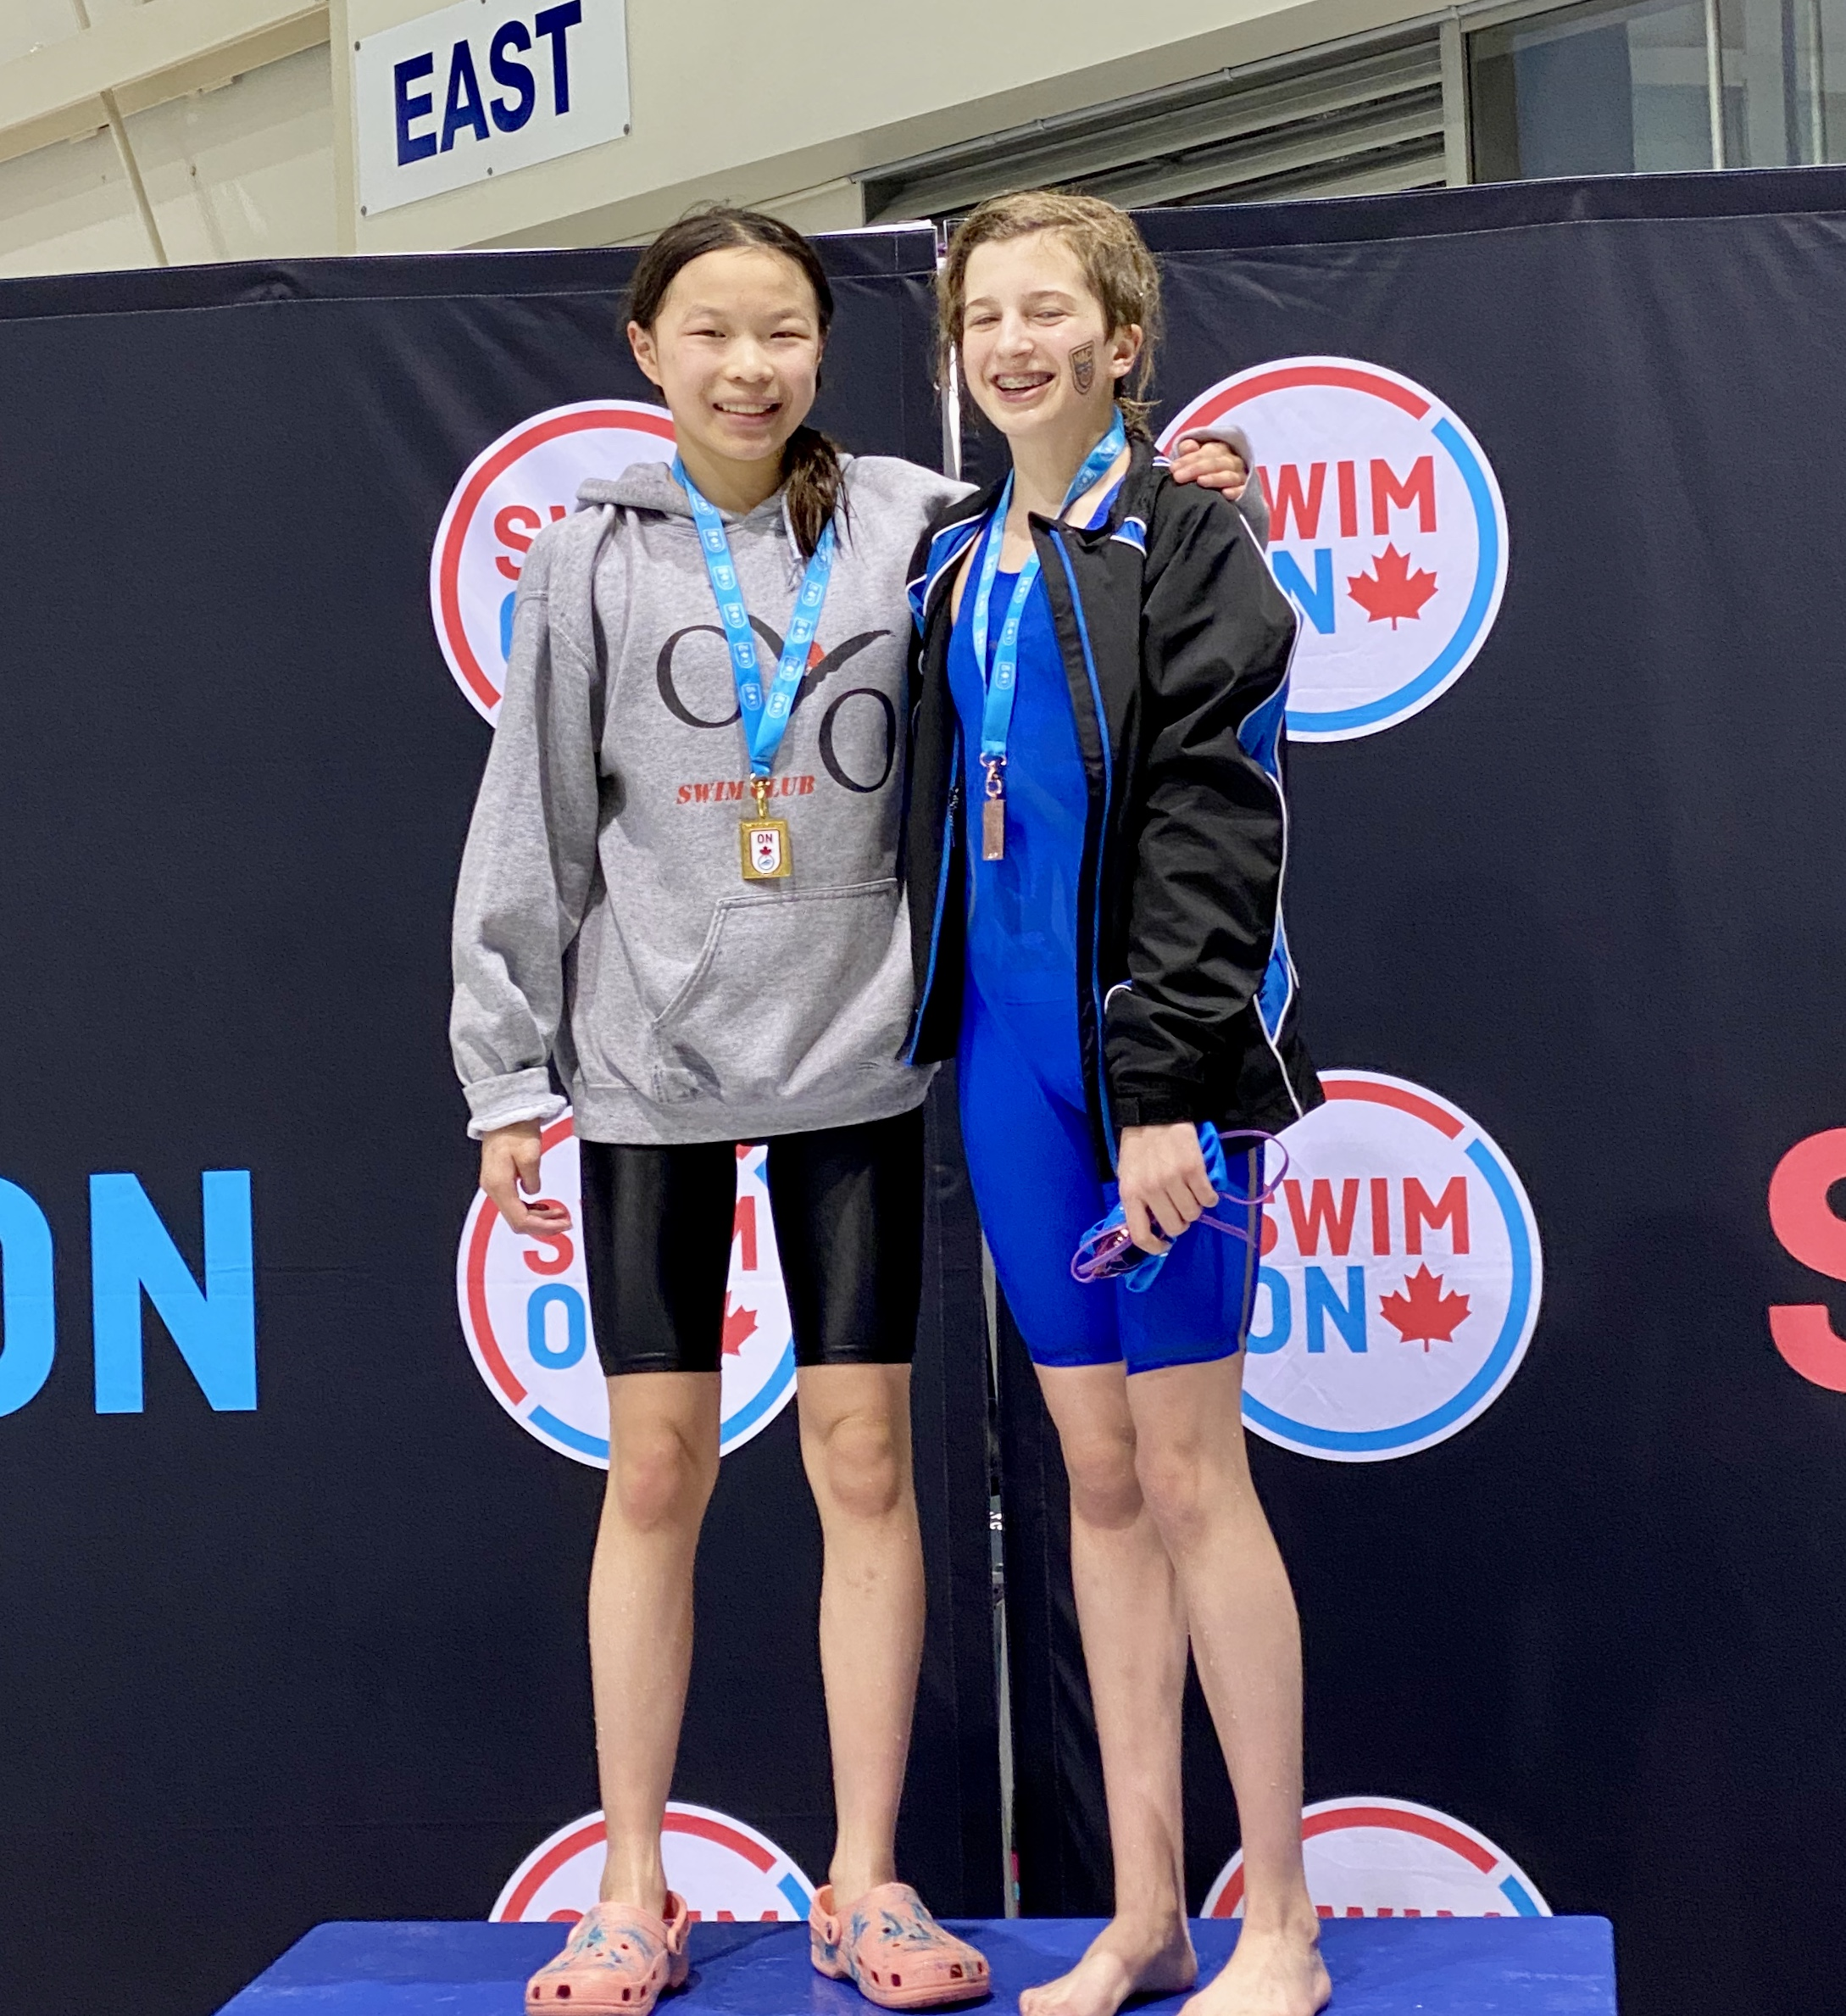 Grace Lu got Gold in 100 BR and qualified for Olympic Trials!!